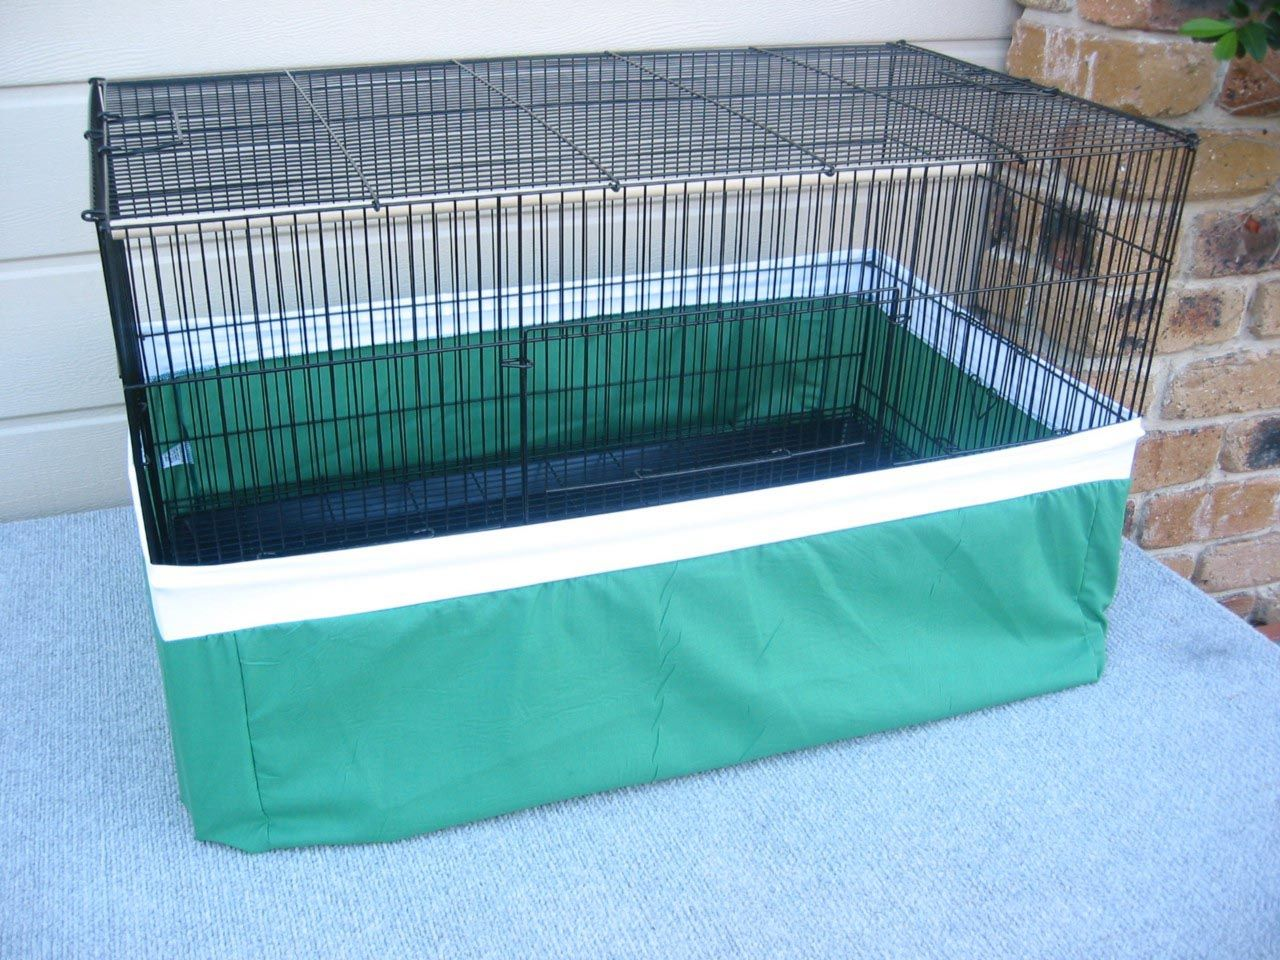 Bird Cage Covers And Seed Catchers Bird Cage Covers Bird Cage Parrot Toys